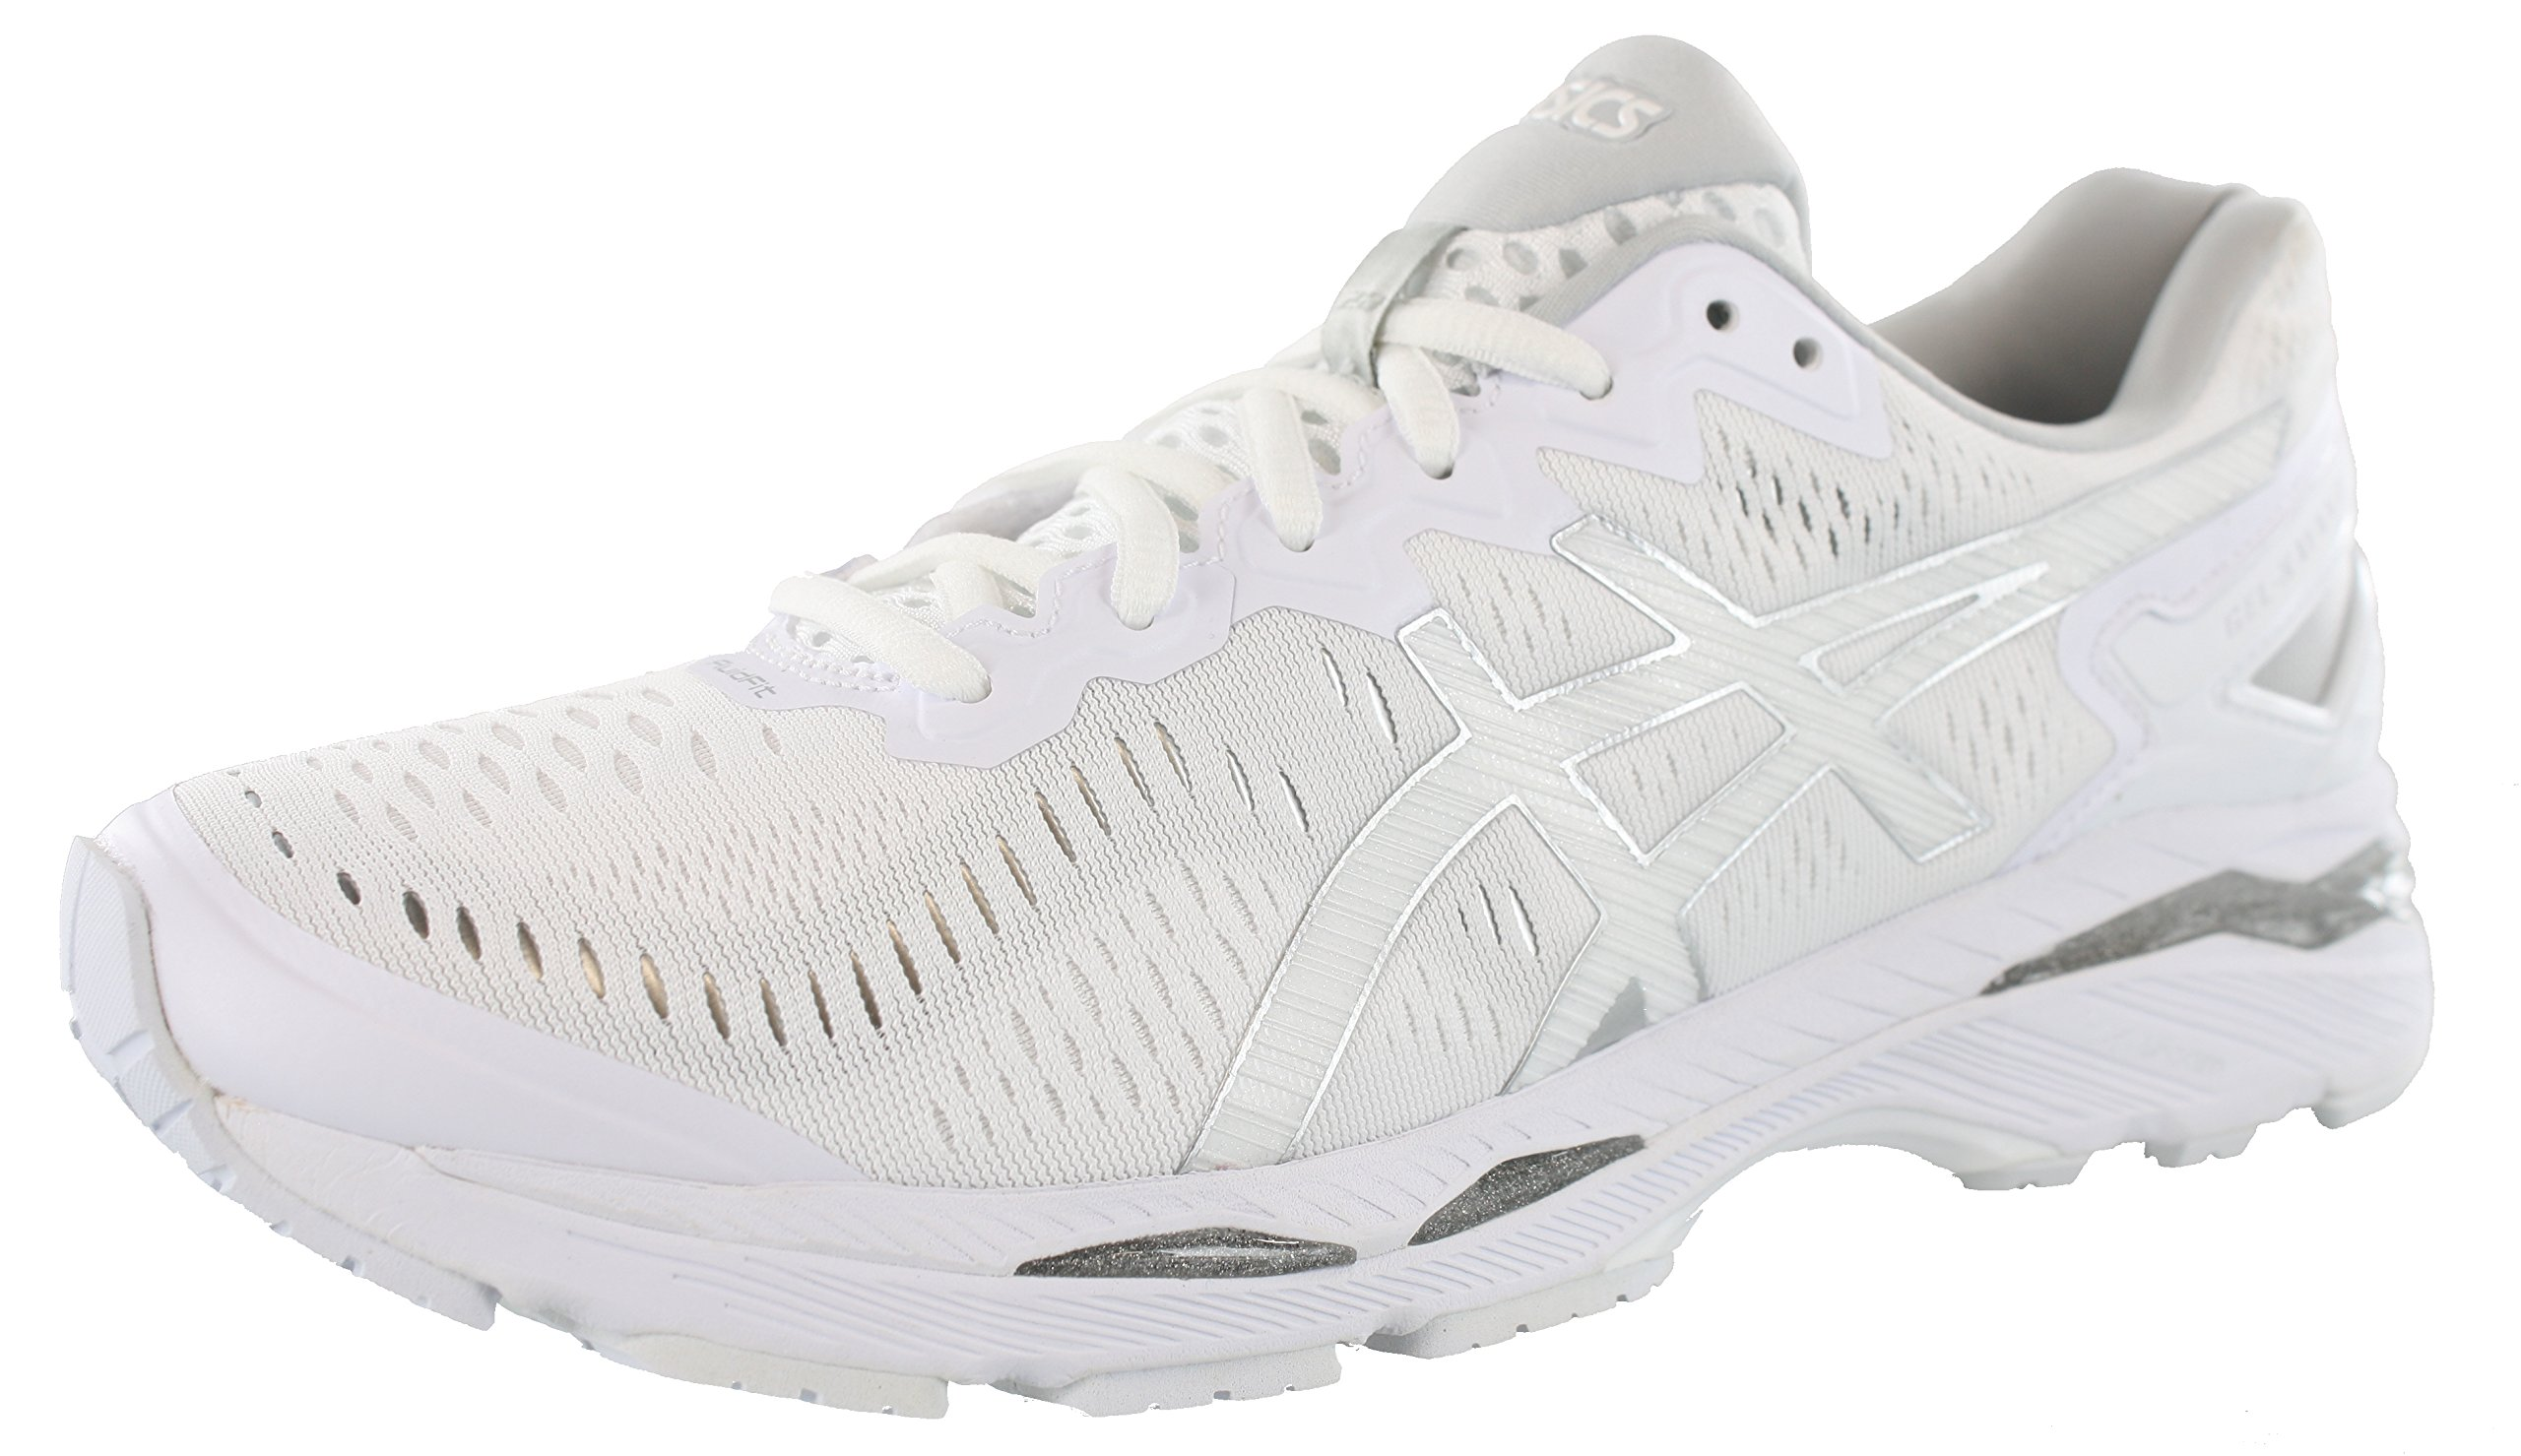 ASICS Men's Gel-Kayano 23 Running Shoe, White/Snow/Silver, 11 M US by ASICS